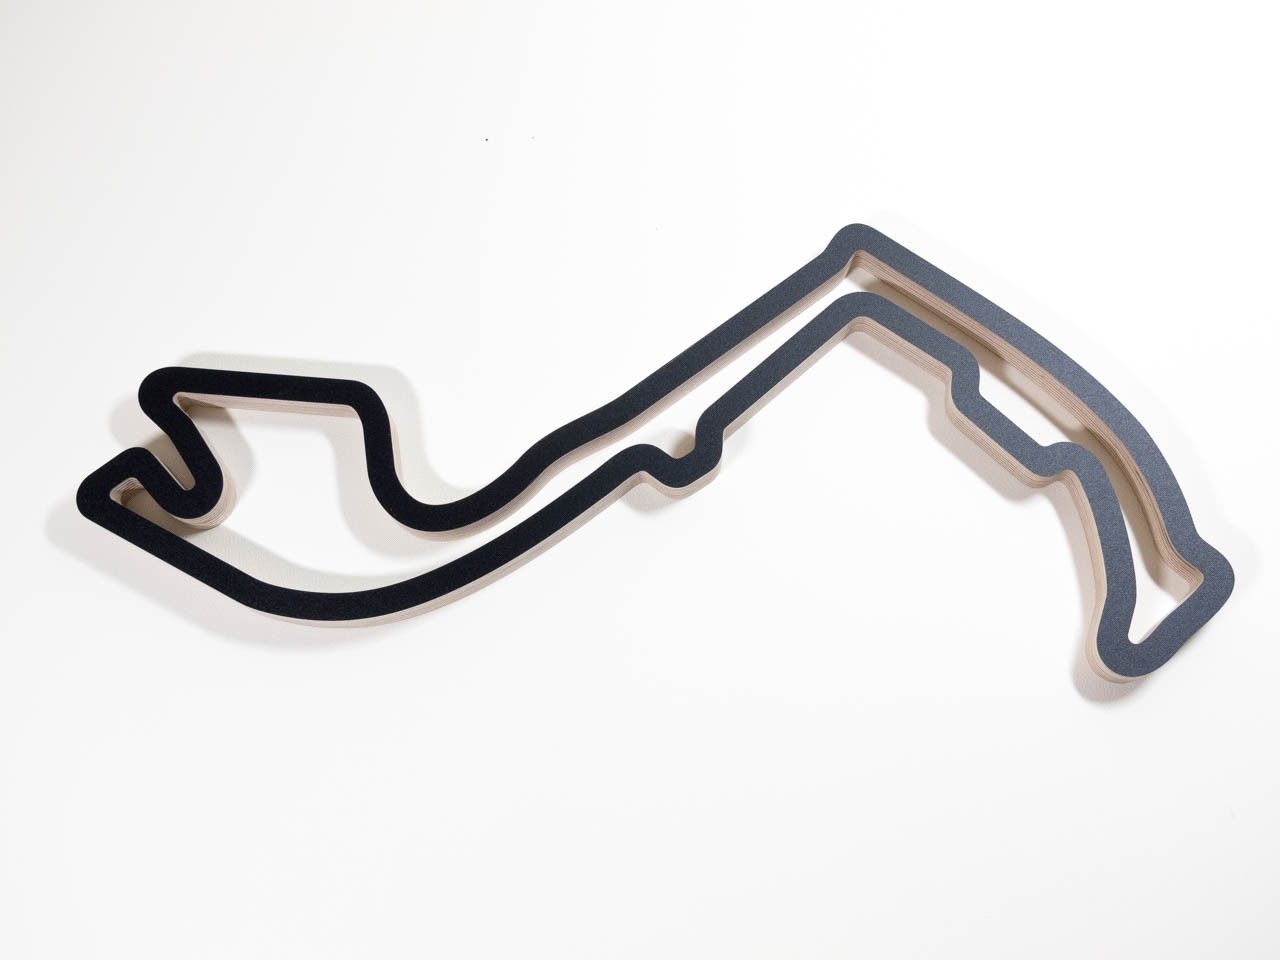 Monaco F1 Grand Prix Motorsport Racing Track Wall Art Wooden Throughout Preferred Race Track Wall Art (View 9 of 15)